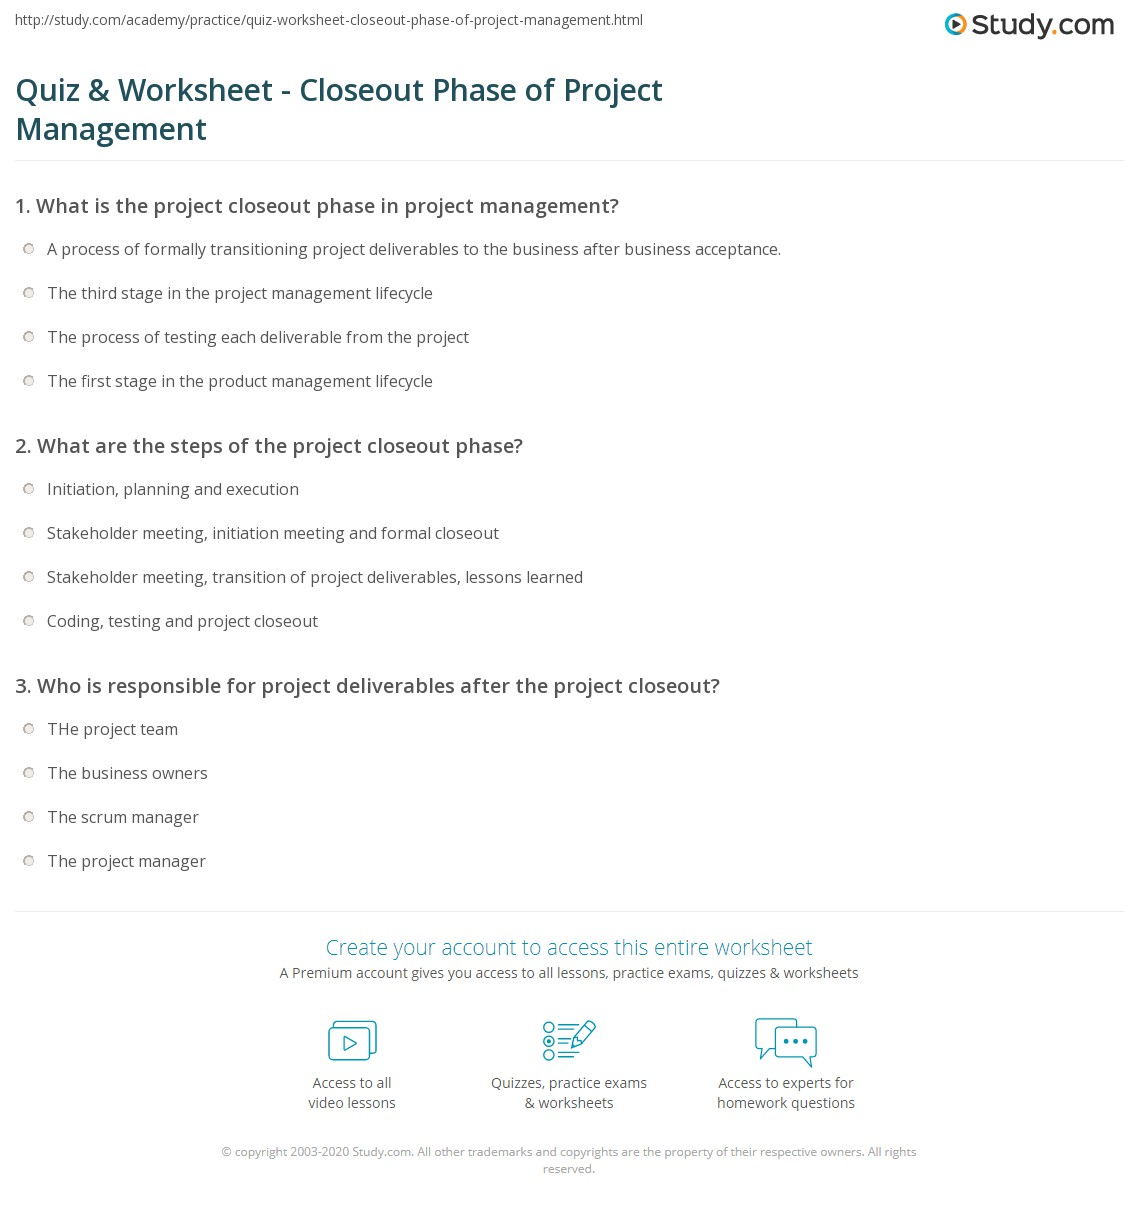 Project Closeout | Quiz Worksheet Closeout Phase Of Project Management Study Com